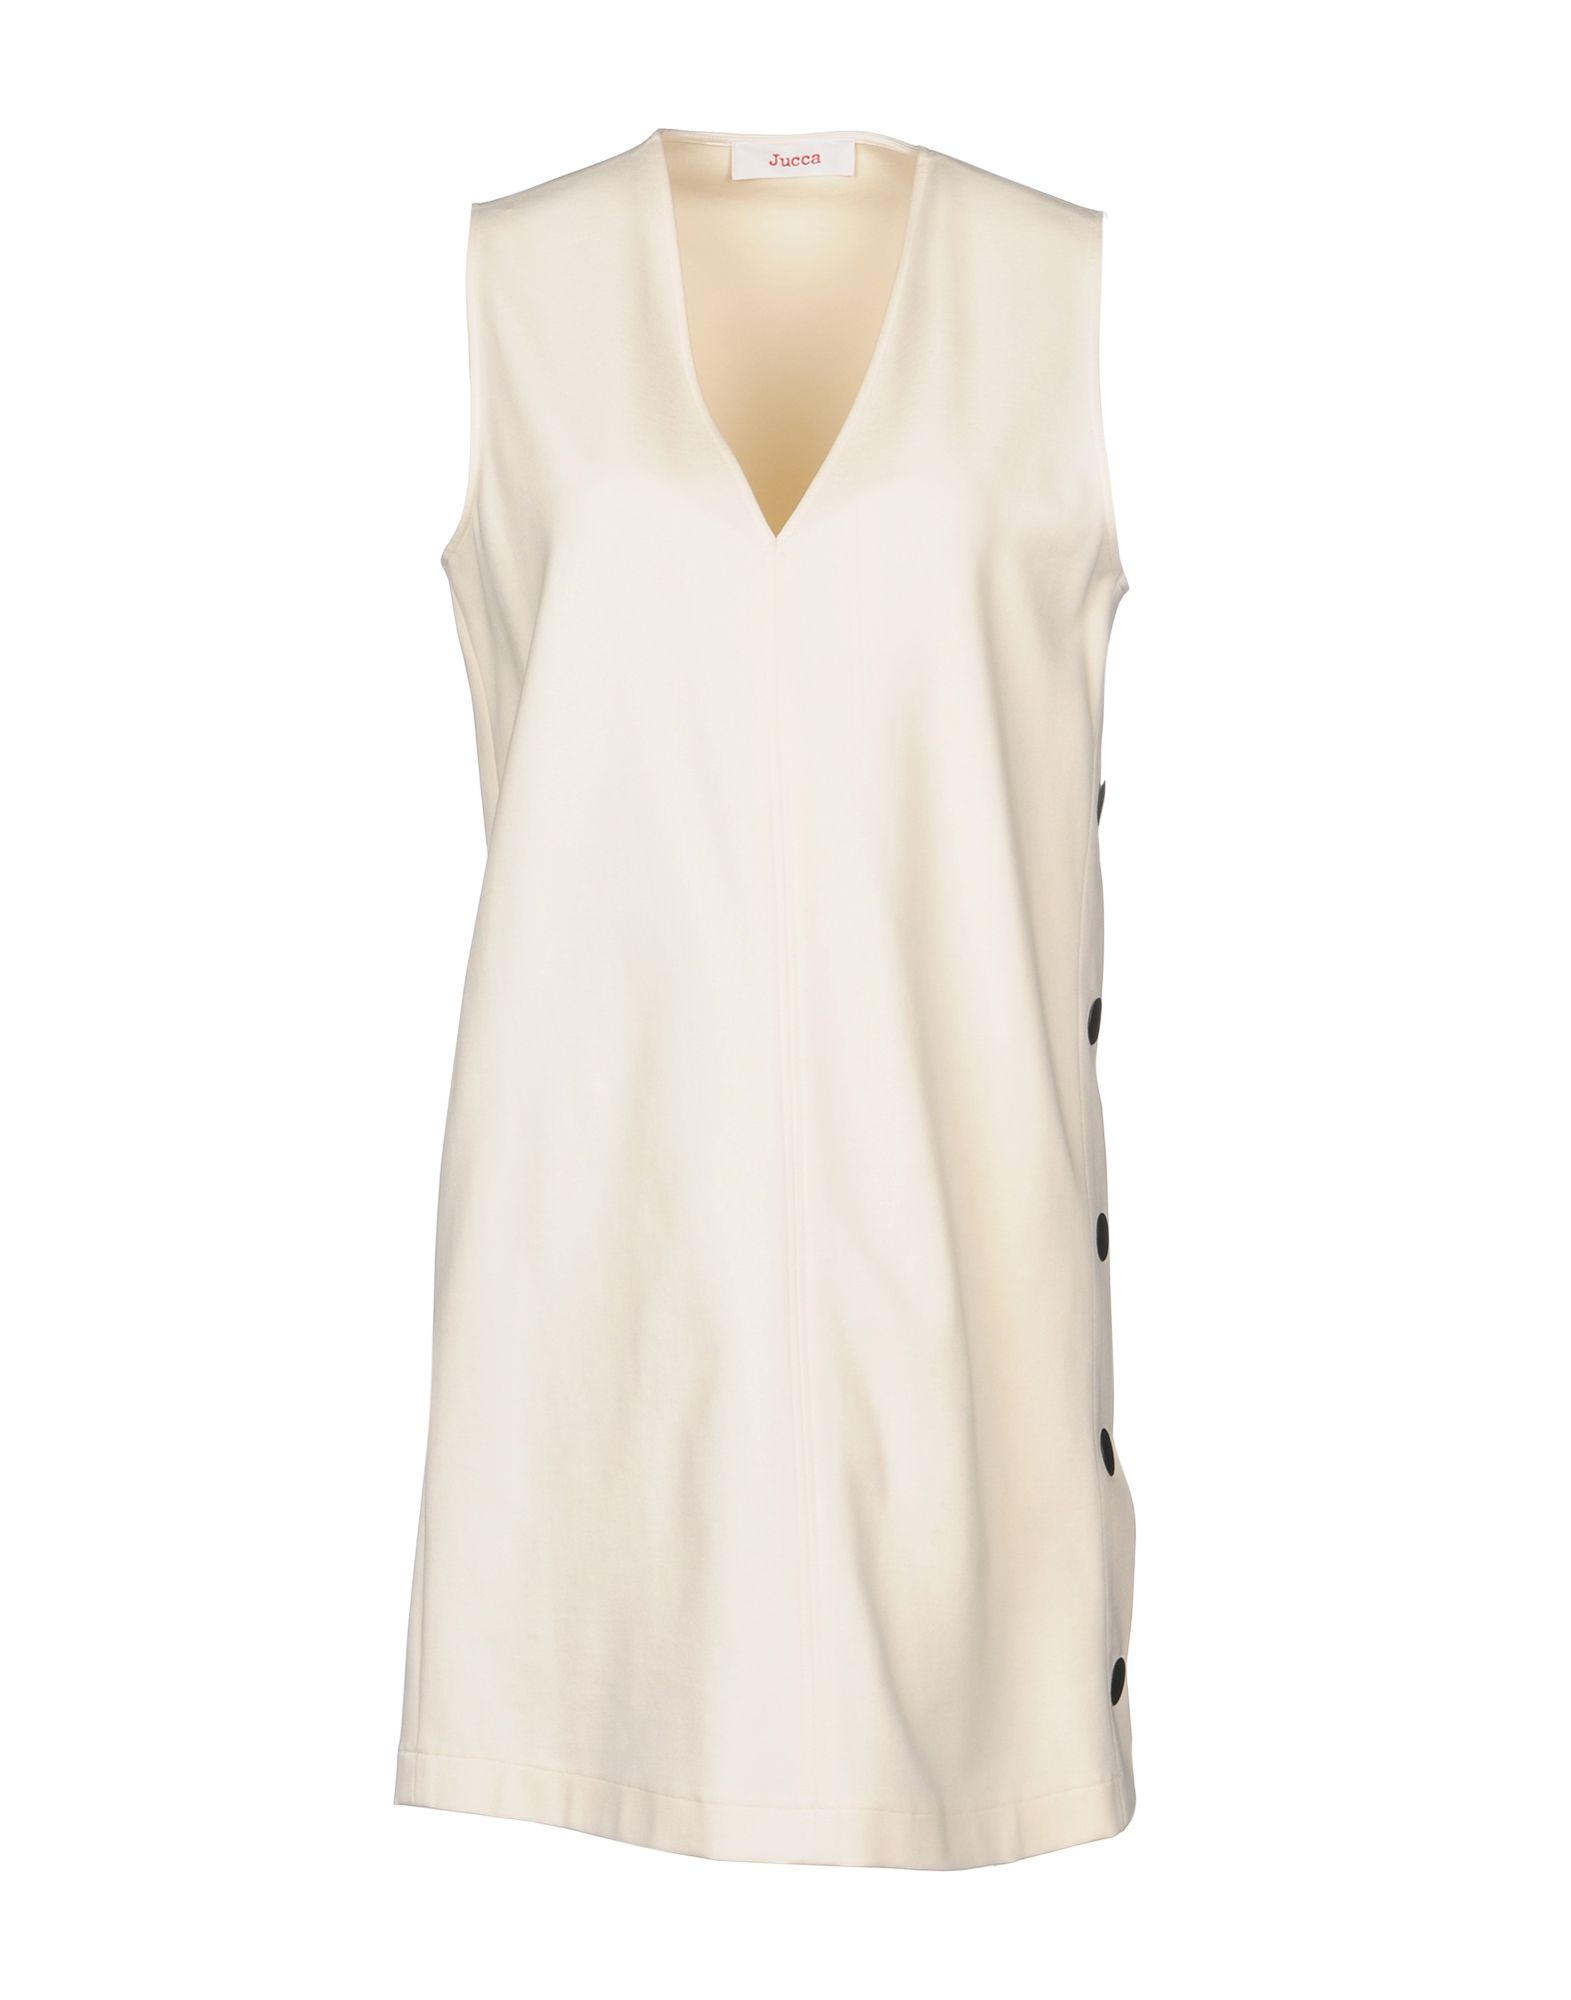 JUCCA Short Dress in Ivory